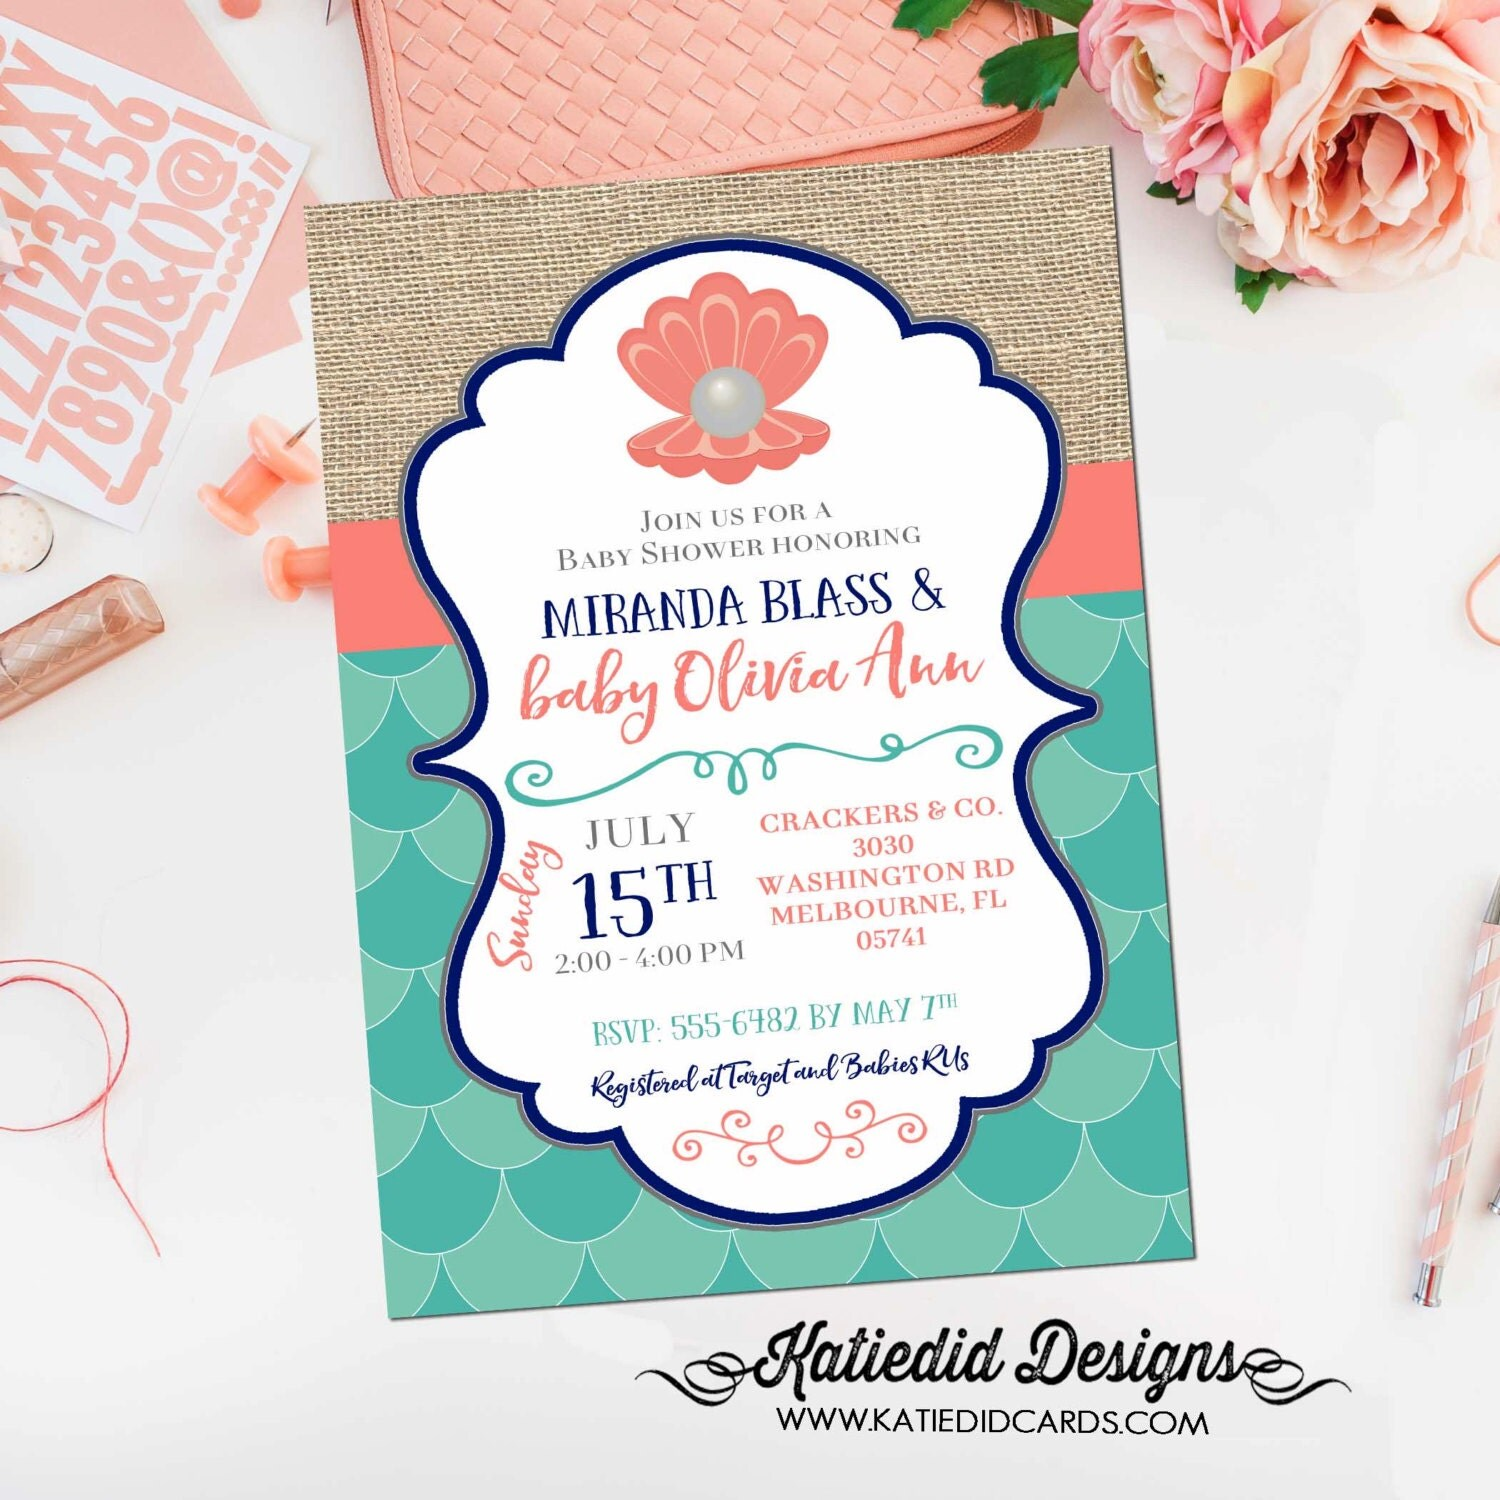 mermaid baby shower invitation bridal 1343 pearl clam wedding